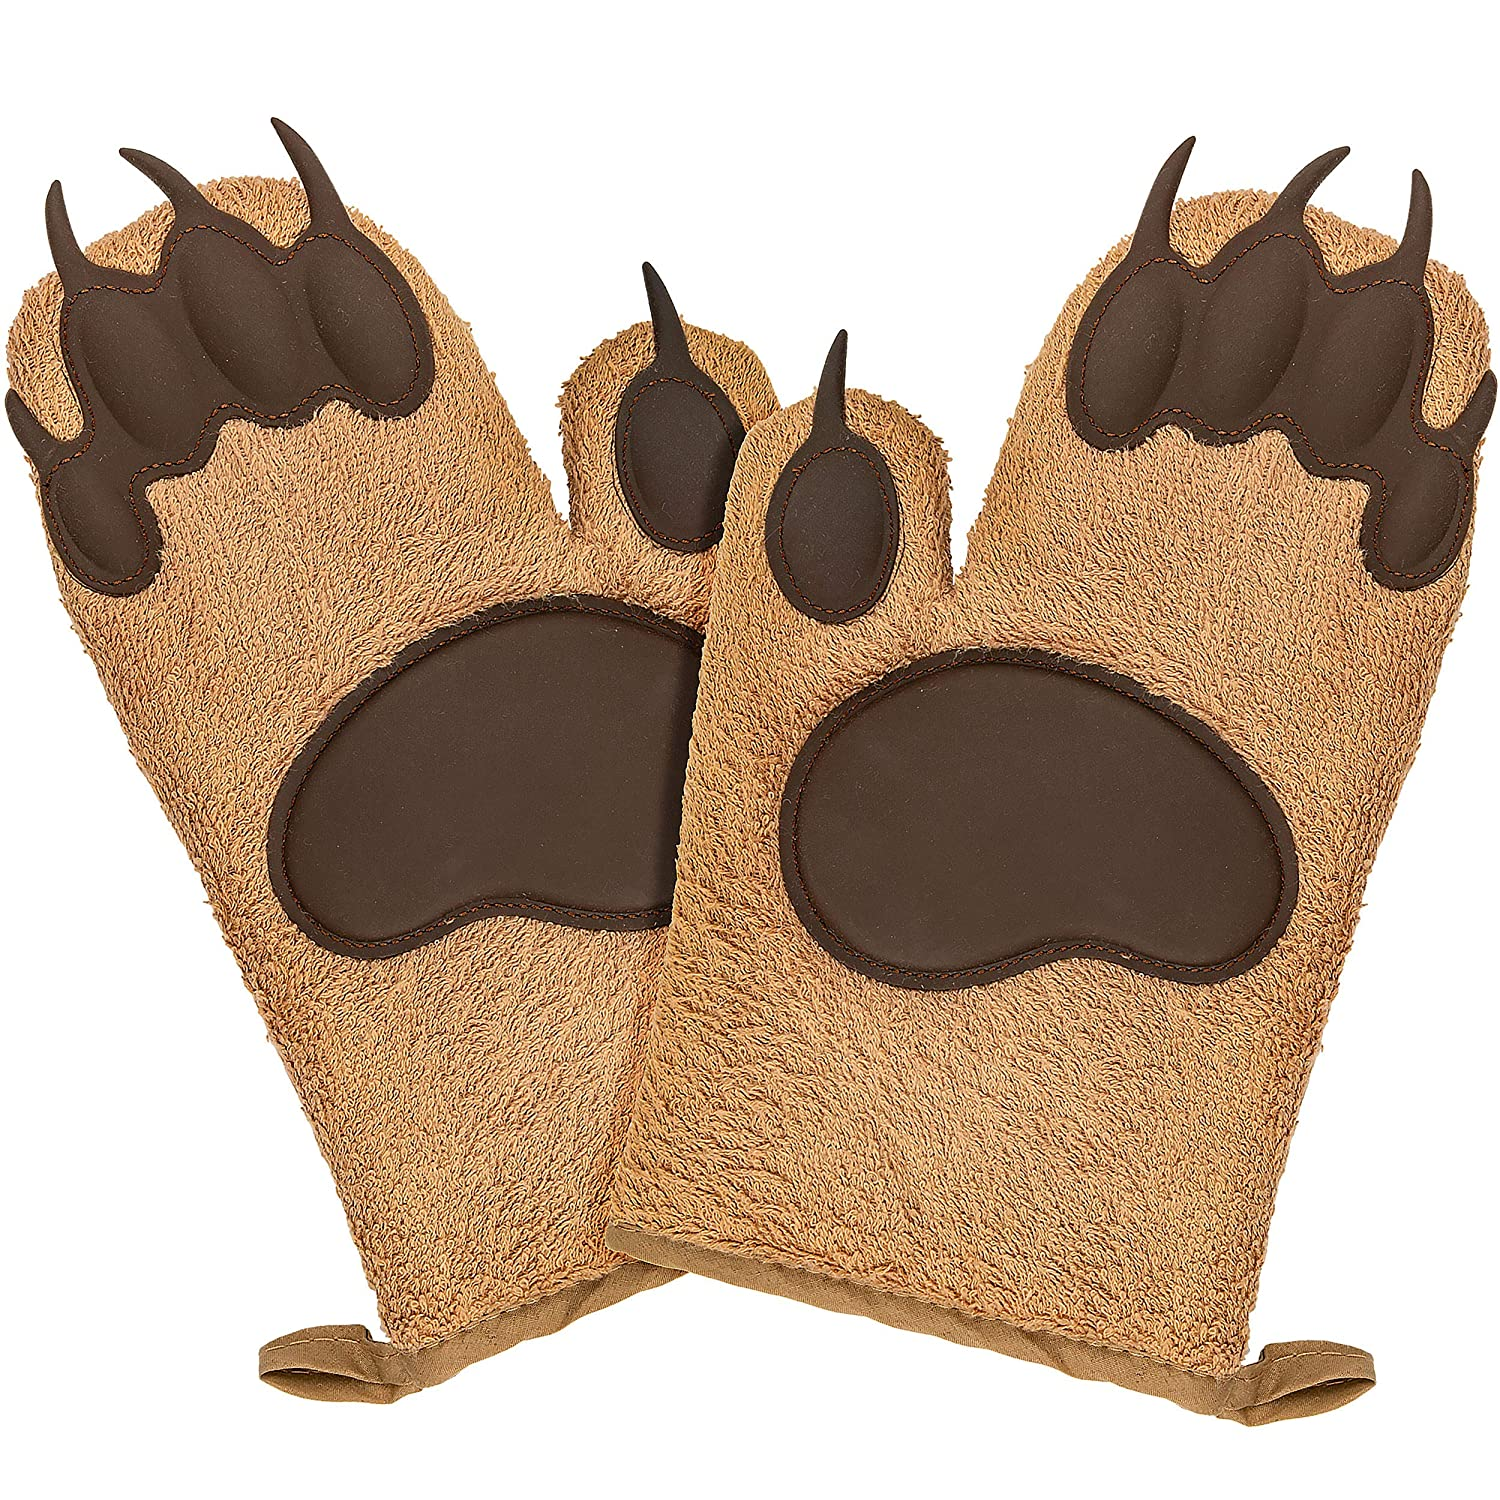 Fairly Odd Novelties FON-10278 Bear Oven Mitts Set Funny and Cute Kitchen Mittens/Potholders for Baking Christmas or Everyday Cooking Gloves, One Size Brown